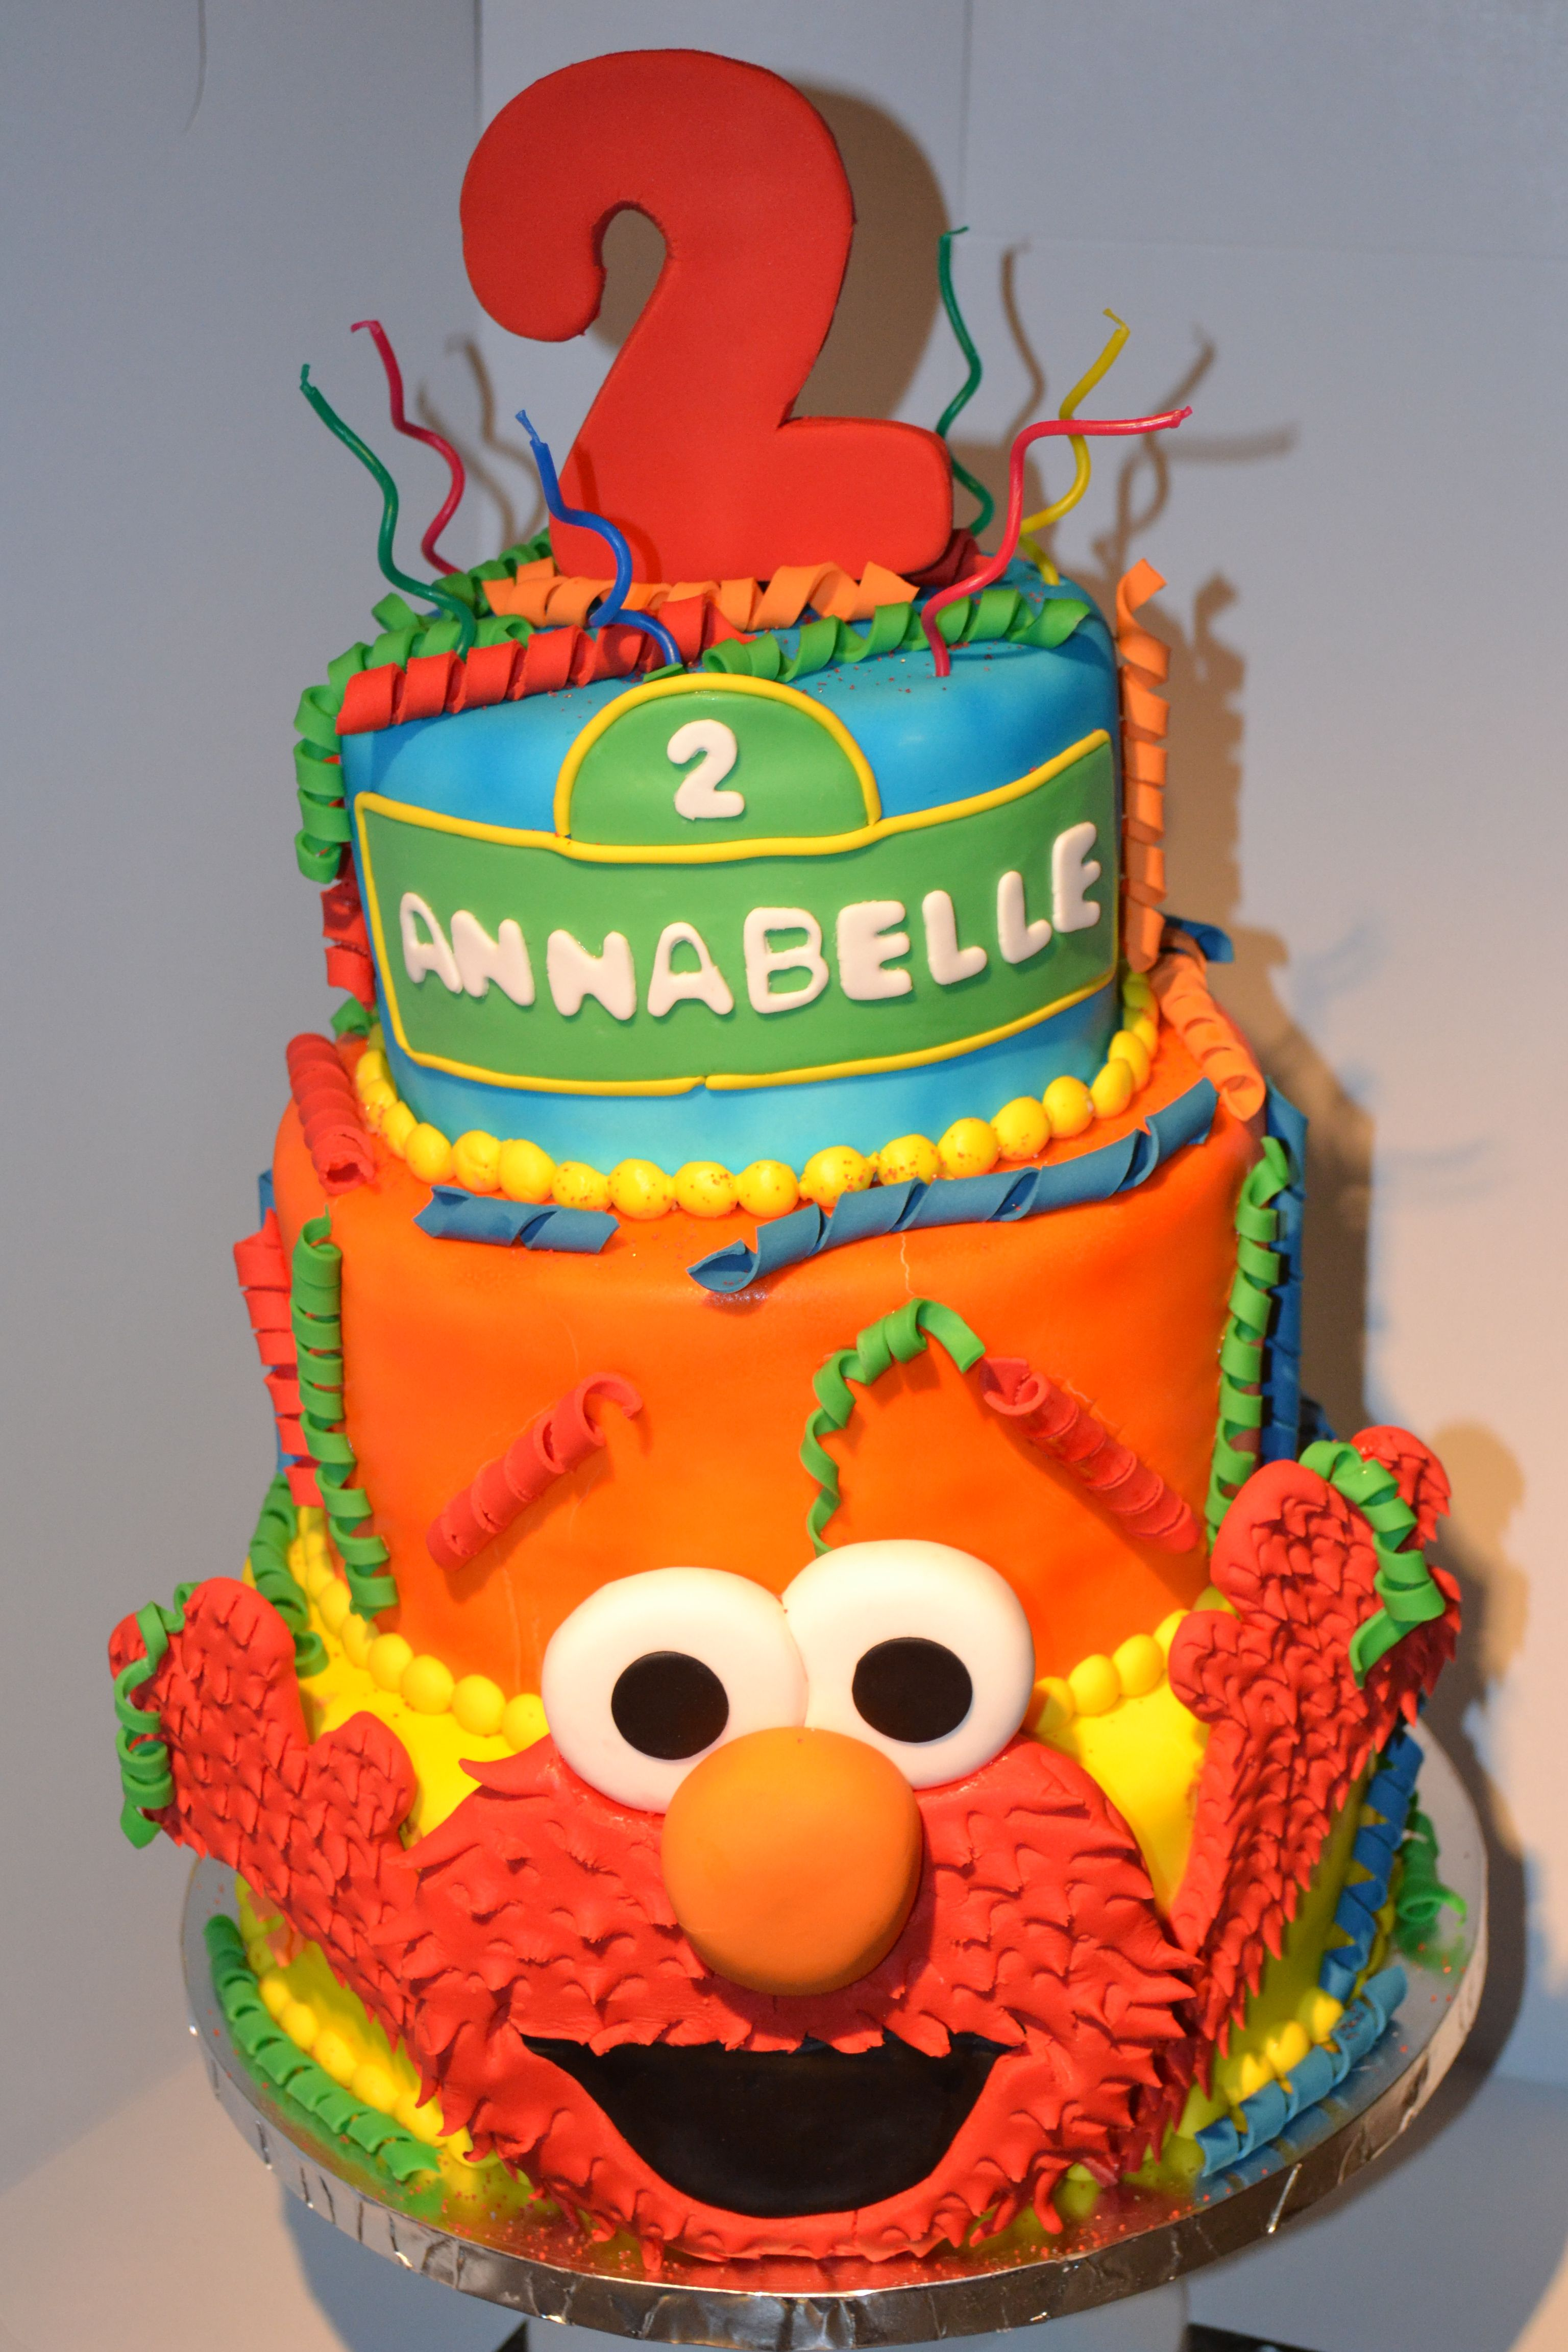 Elmo Birthday Cake Bittersweet Bake Shoppe Tyngsboro Massachusetts